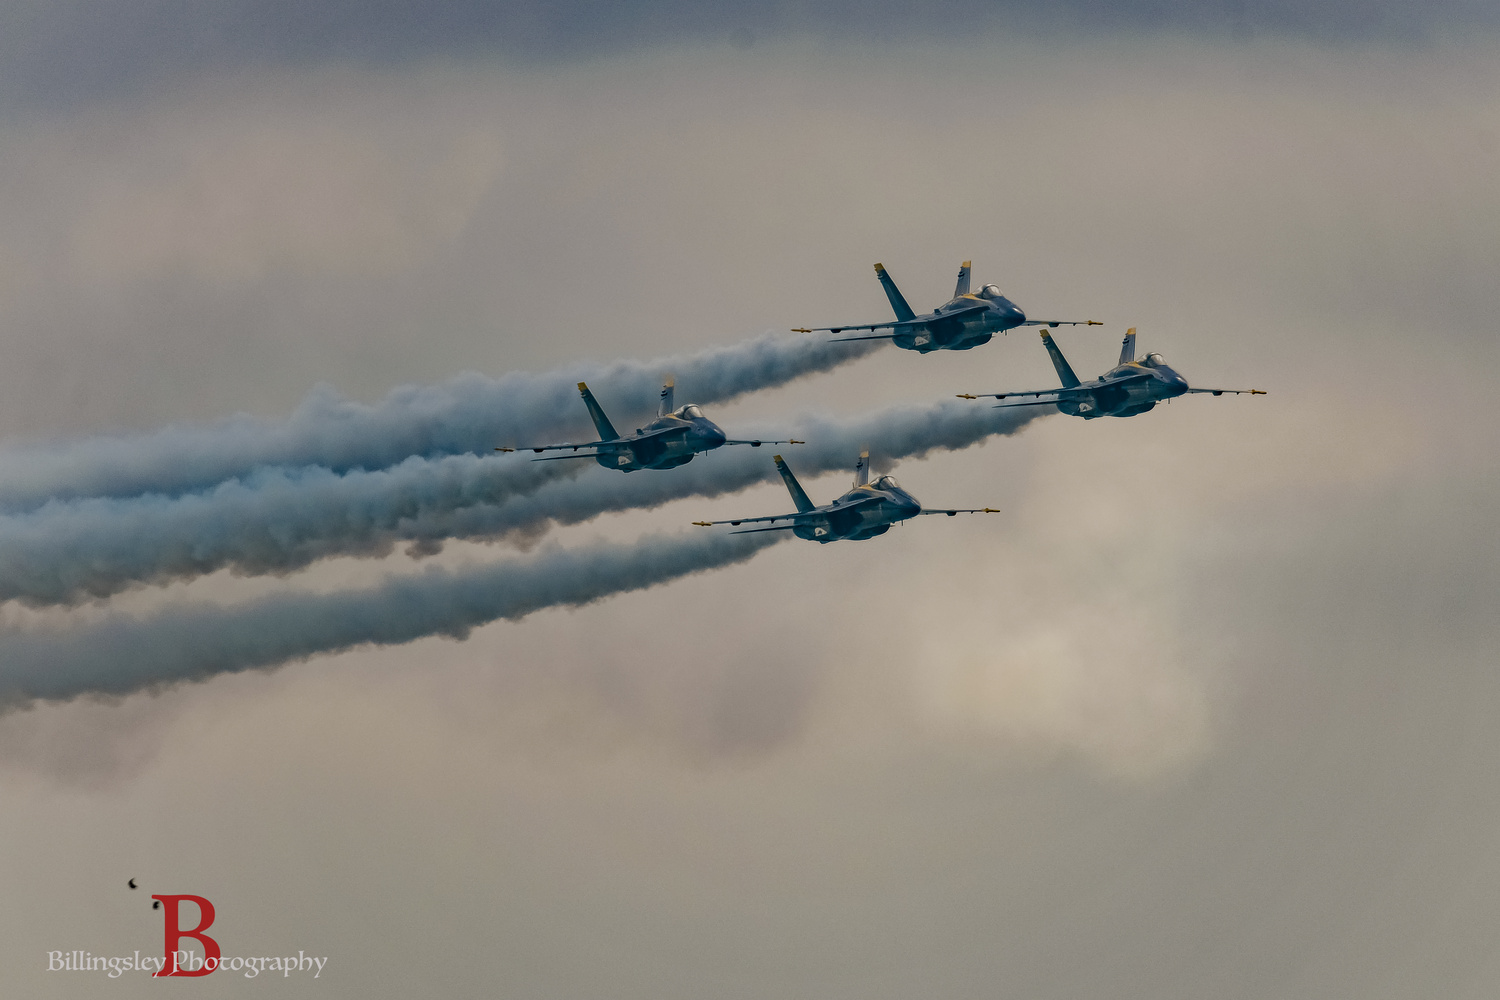 The Awesome Blue Angels by Cliff Billingsley